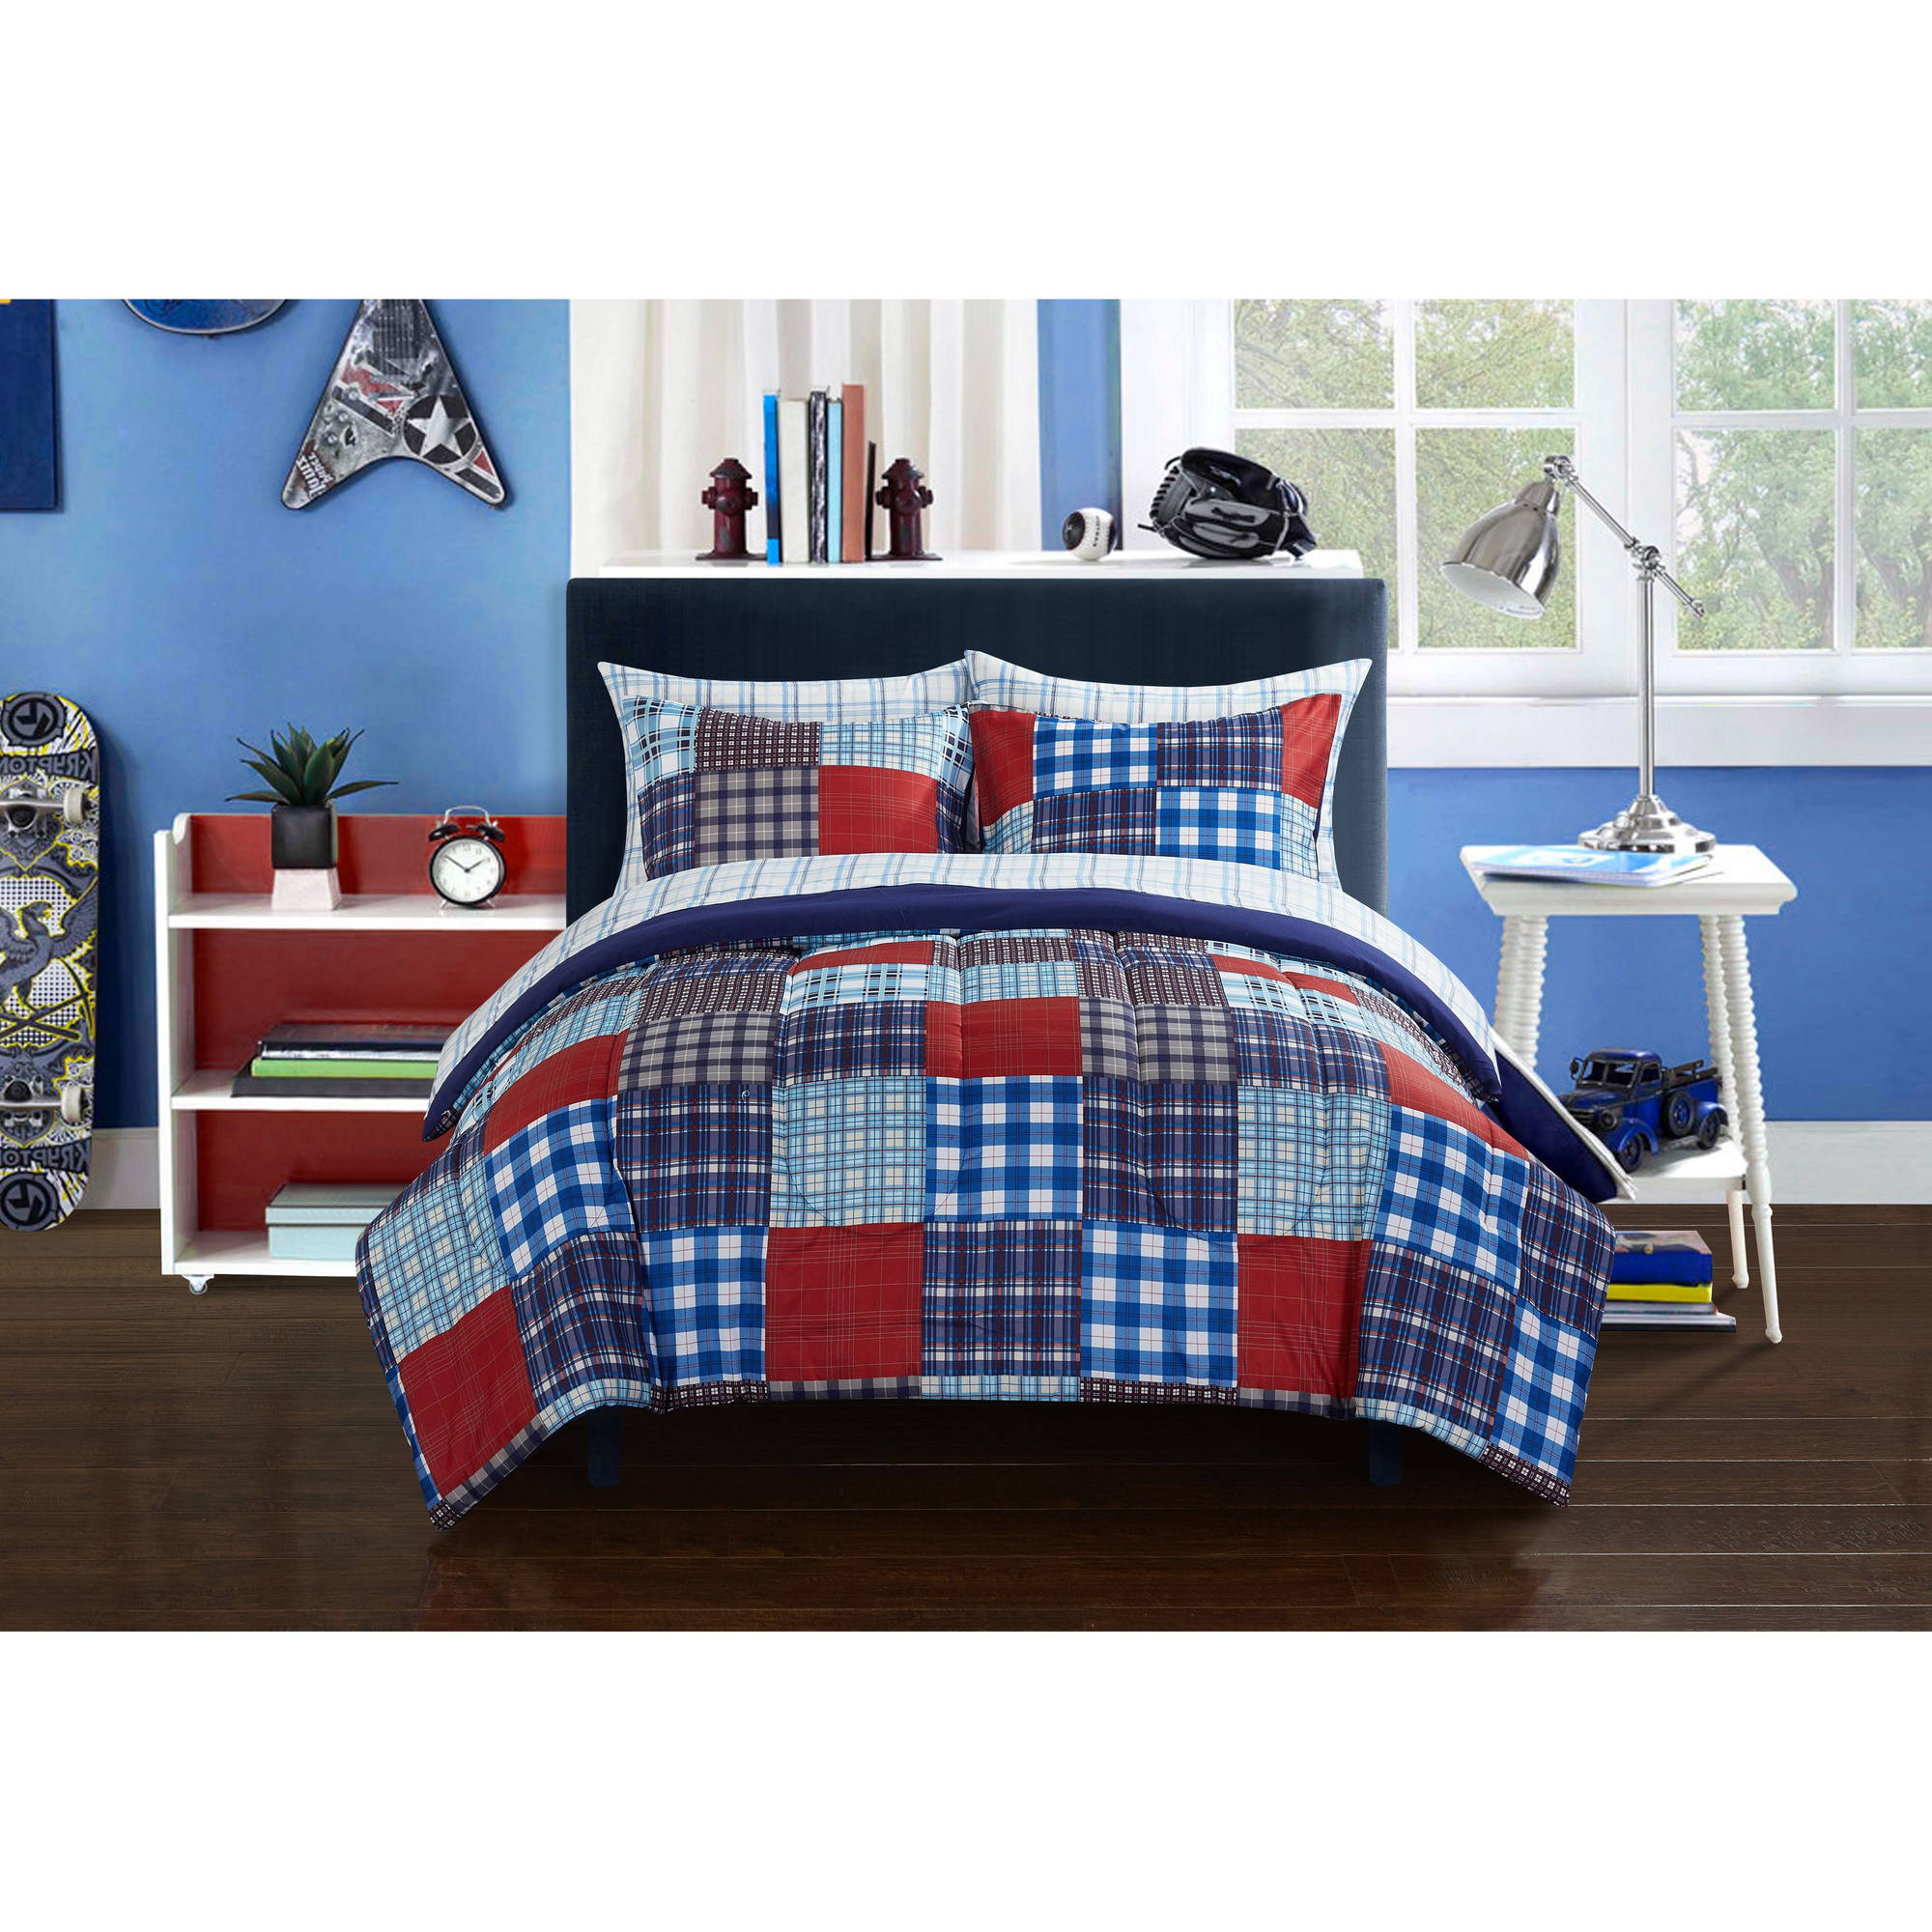 Mainstays Kids Mad Plaid Blue Bed in a Bag Bedding Set by Idea Nuova